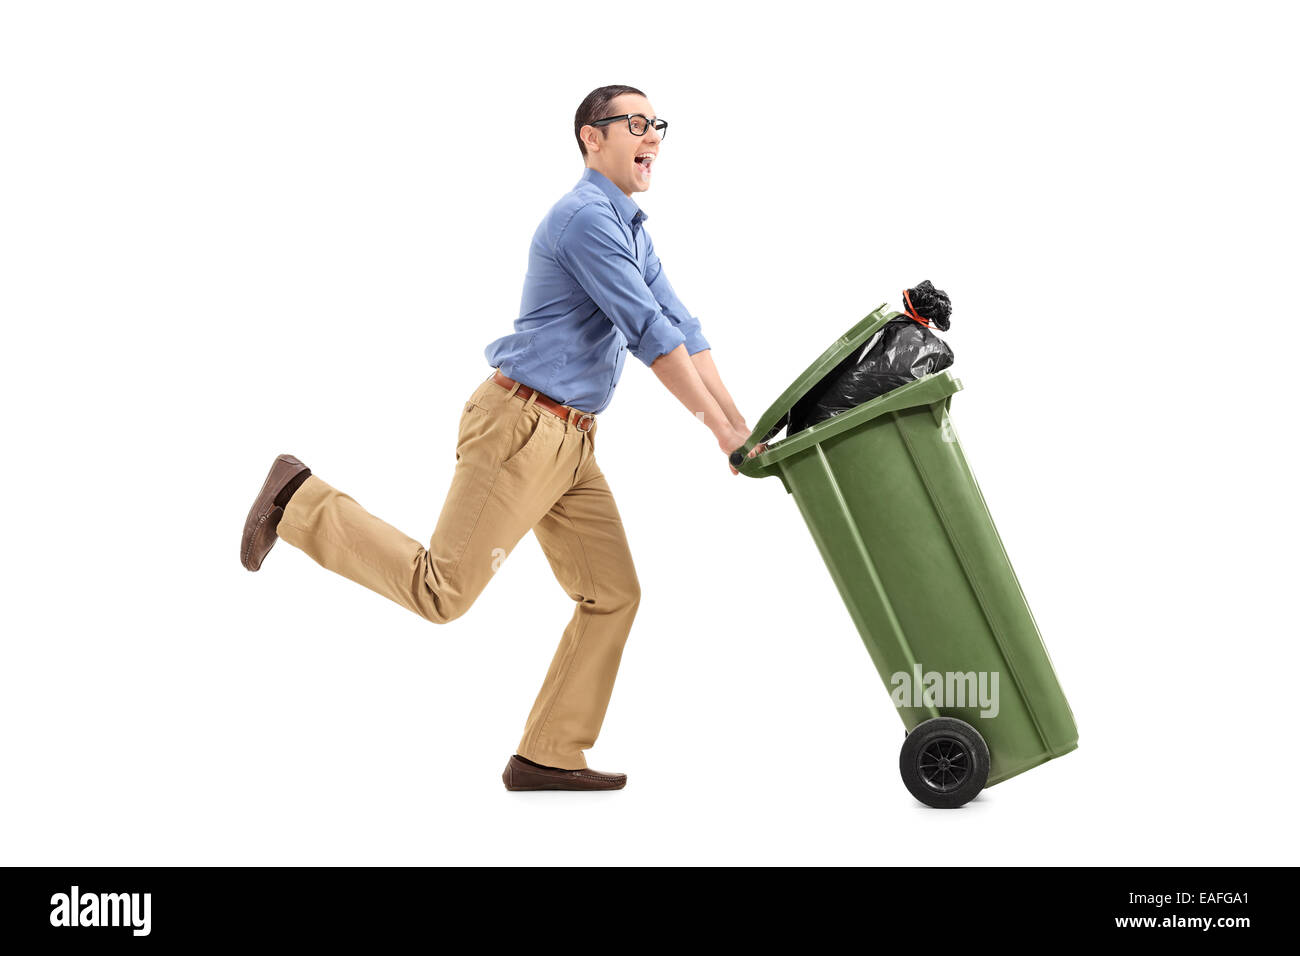 An excited man pushing a garbage can isolated on white background - Stock Image